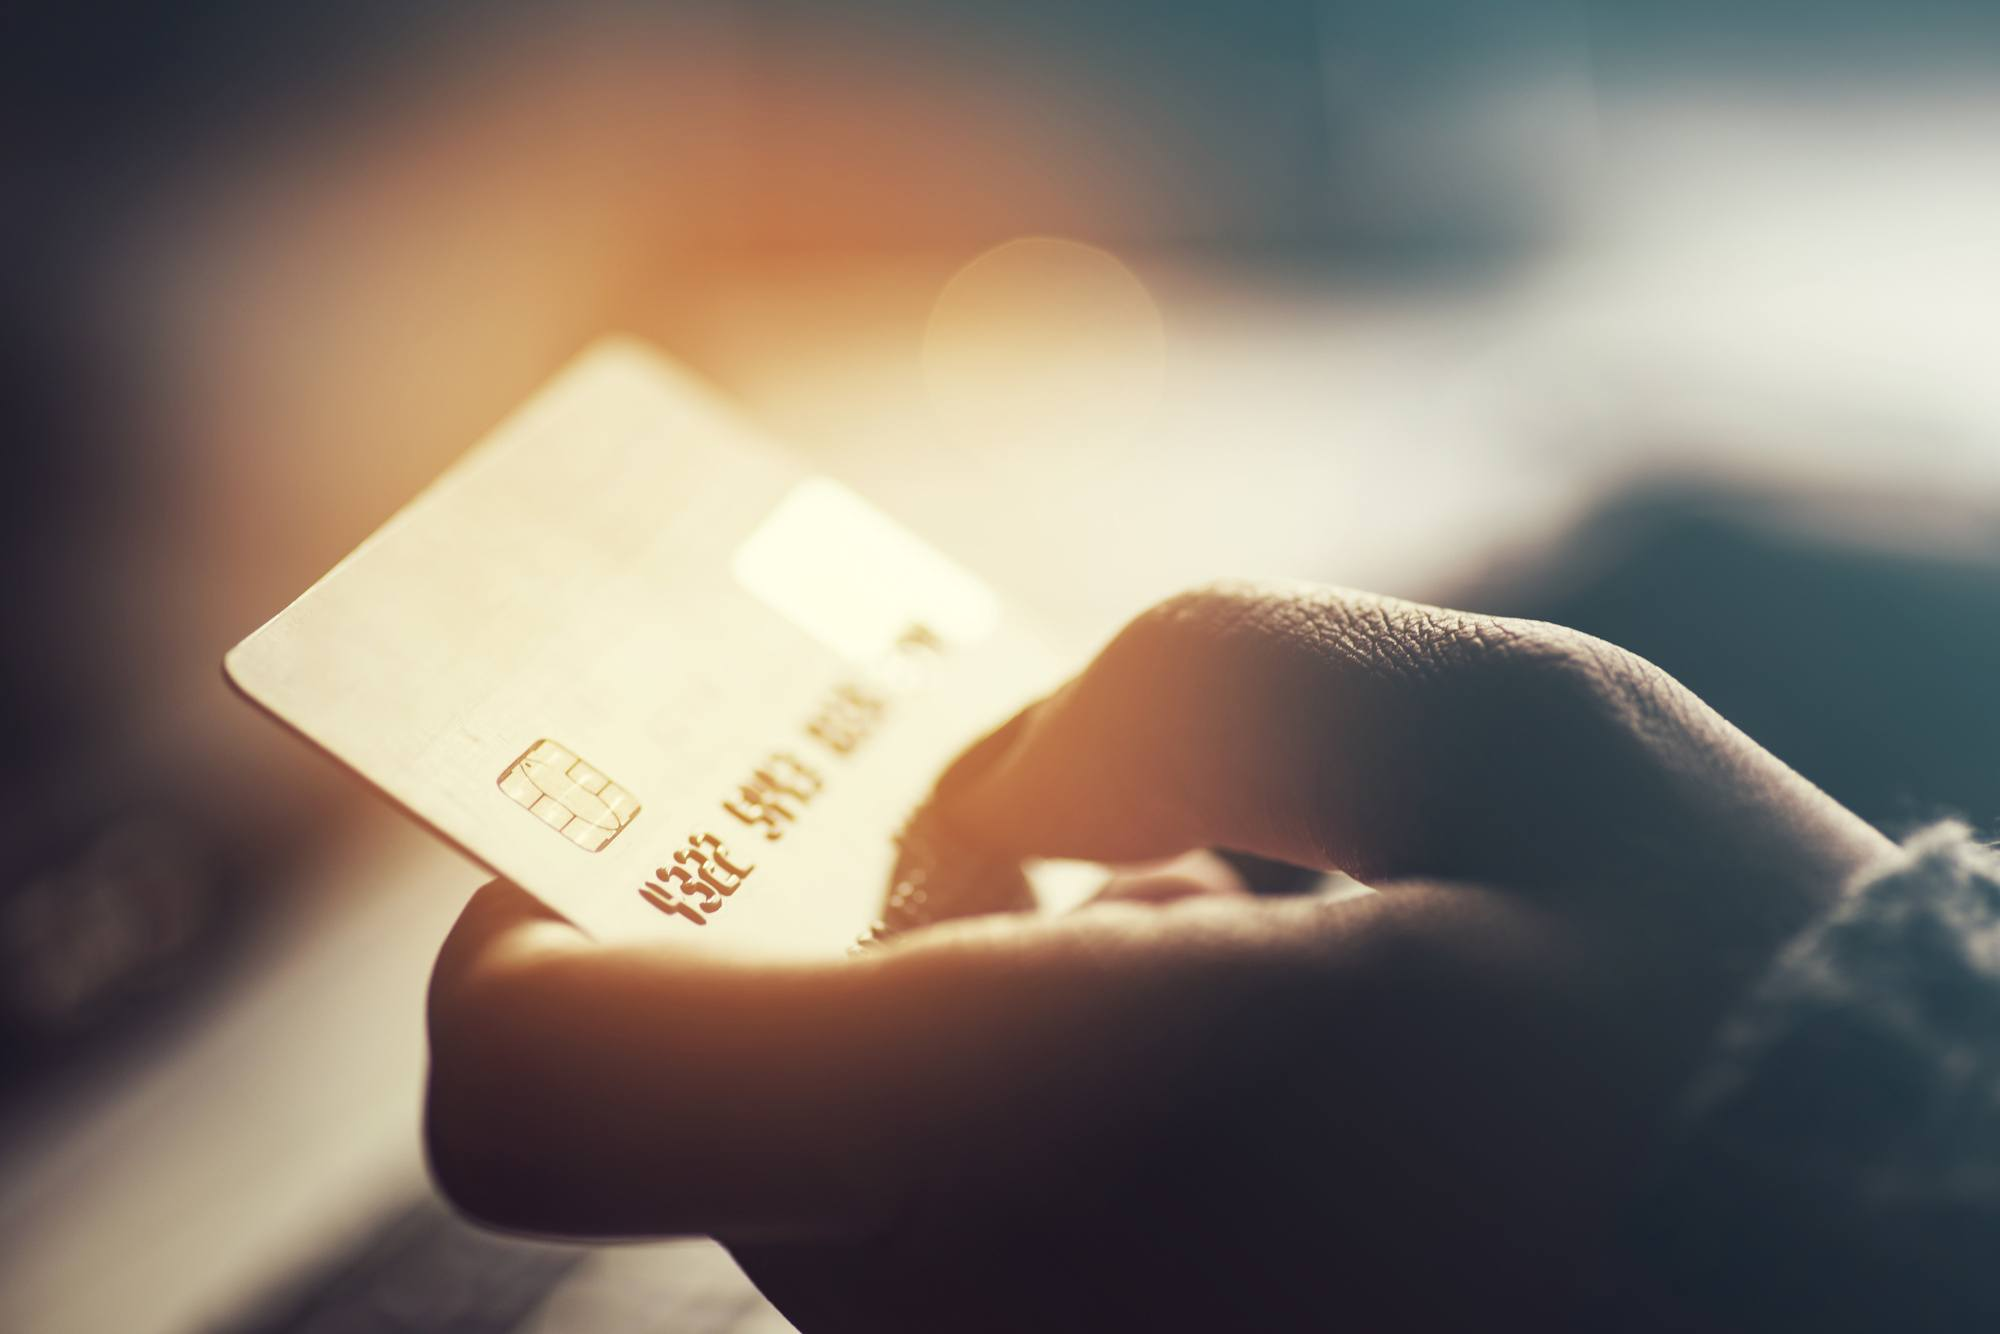 If you're going to accept credit card payments then inevitably at some point you will be storing credit card information. Learn how to do this safely, securely and in accordance with regulations following these 10 great tips.